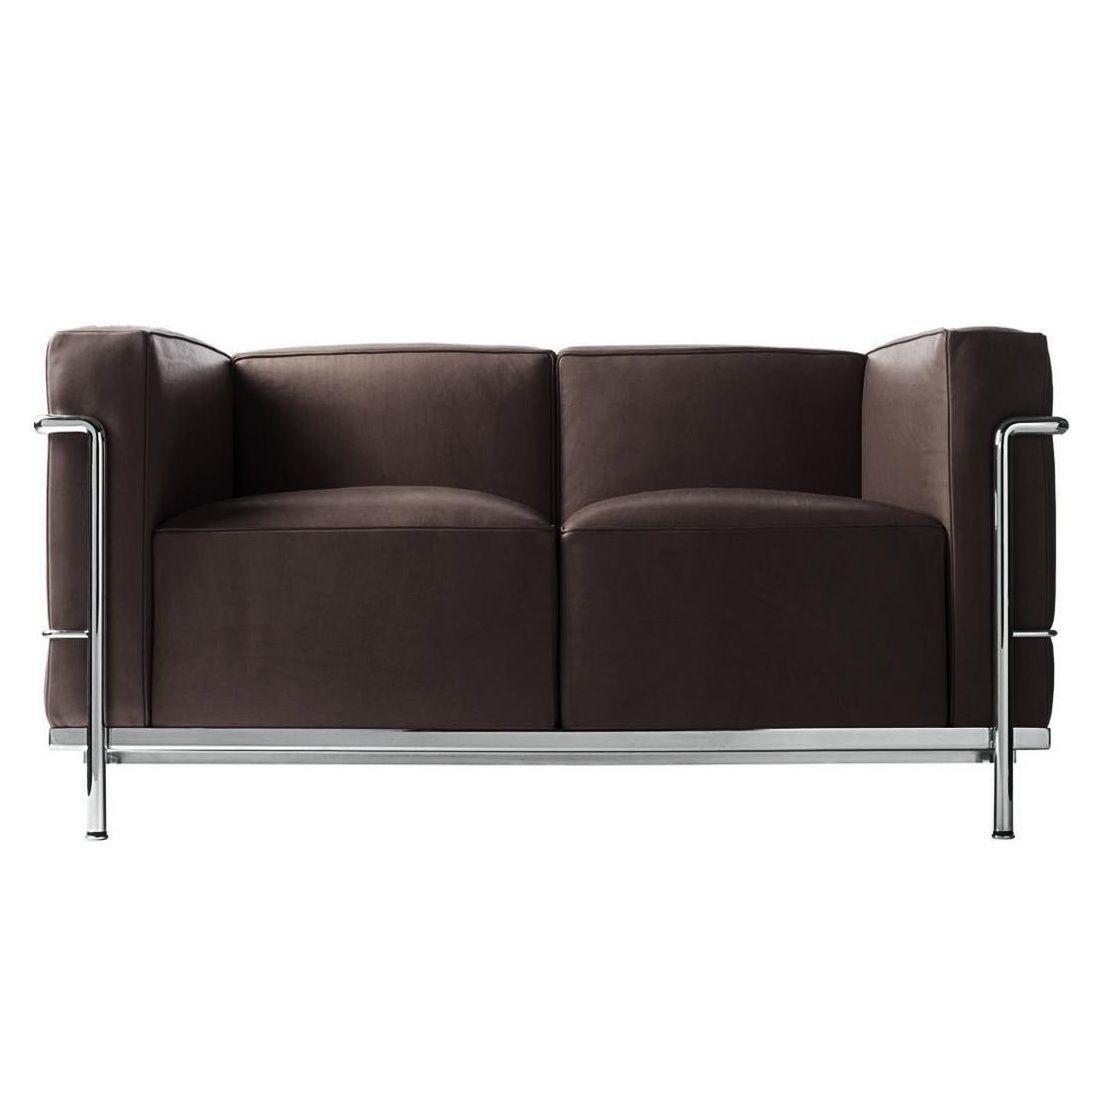 Le corbusier lc2 sofa cassina cassina sofas seating furniture furnitu - Canape lc2 le corbusier ...